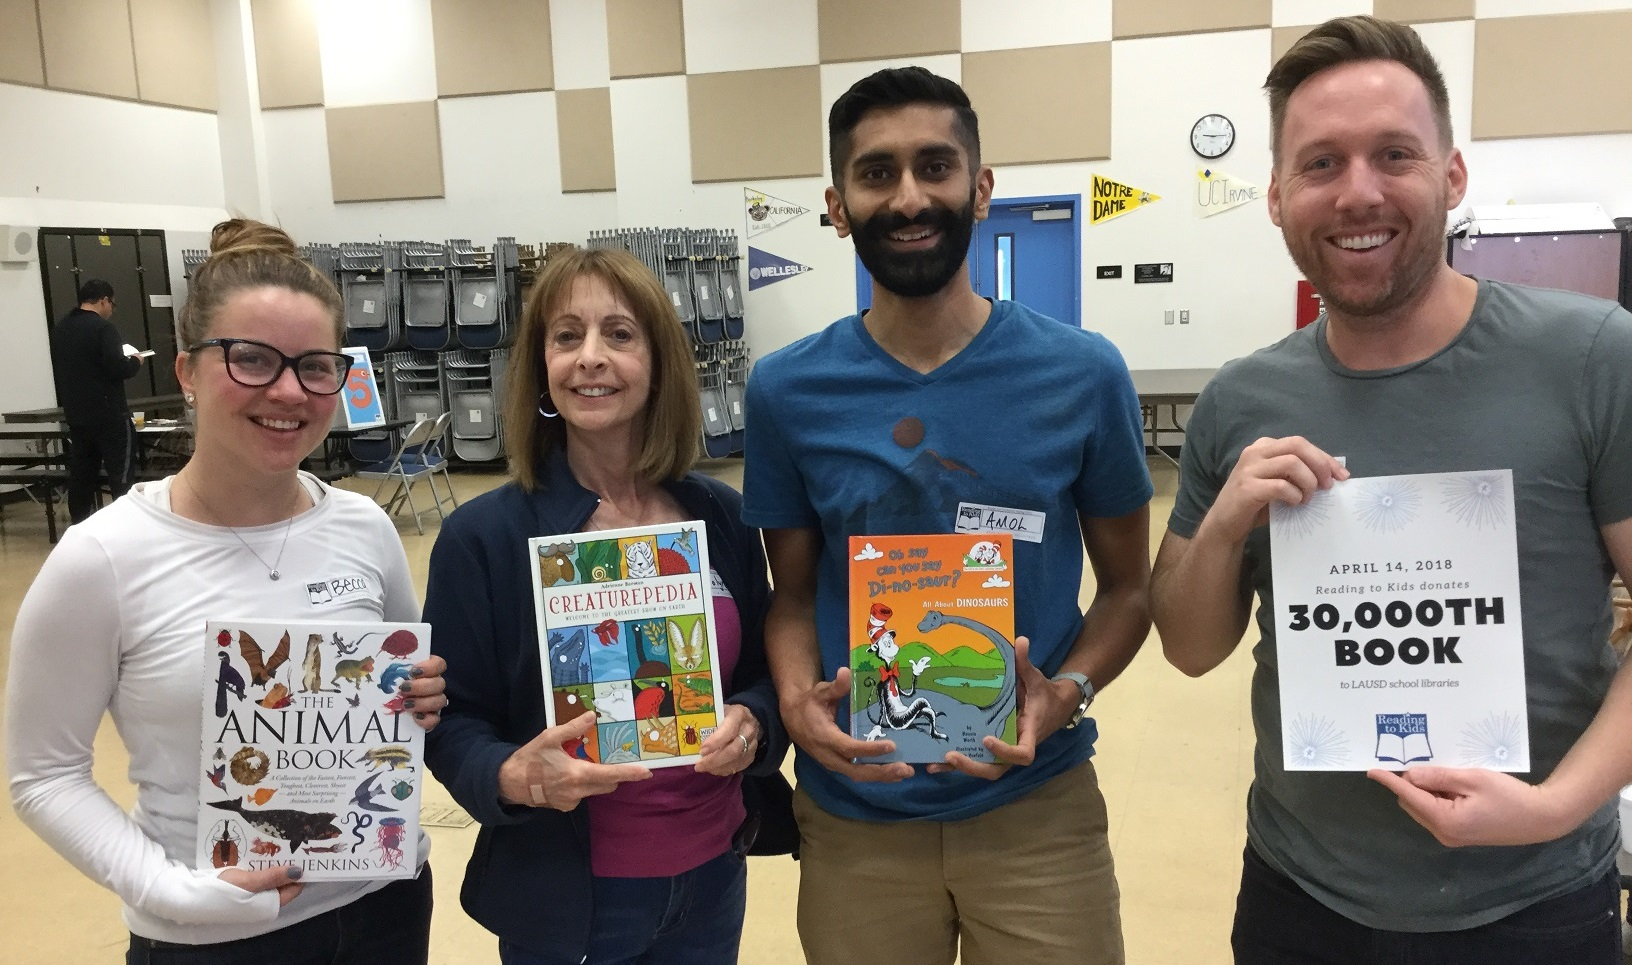 Volunteers with 30,0000th donated library book